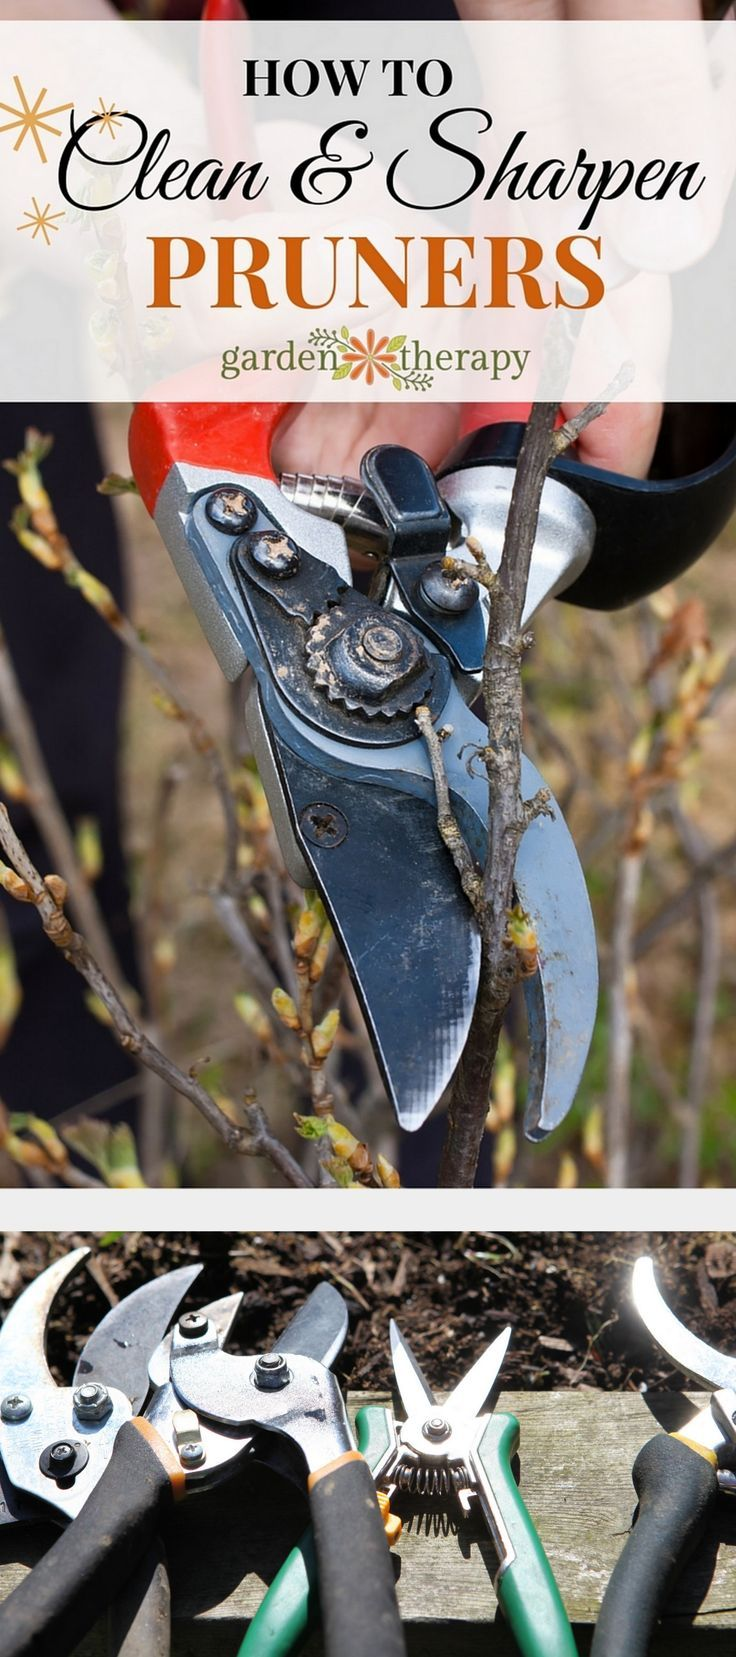 Forget those rusty, dirty pruners that stick and don't make clean cuts - these simple steps will make them new again! #ad